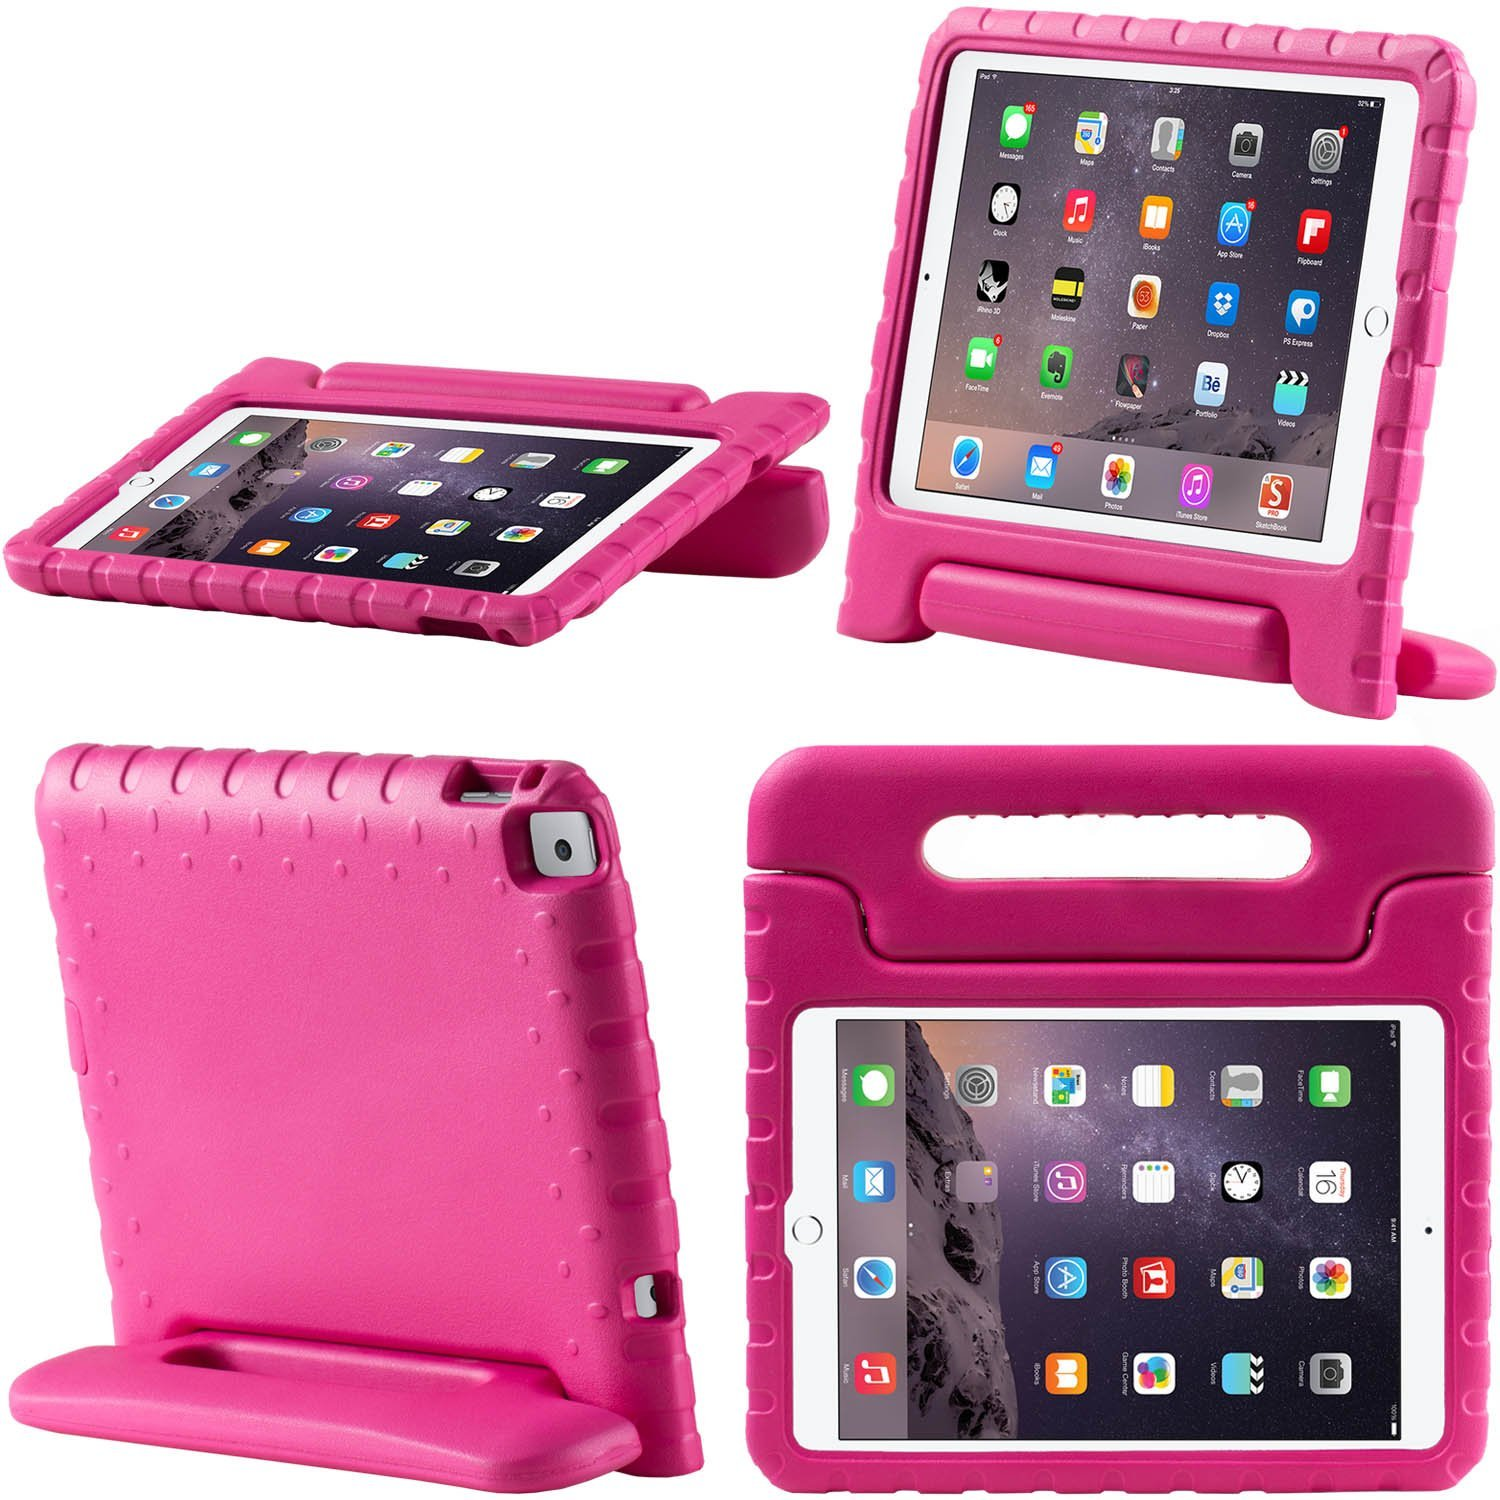 i-Blason ArmorBox Kido - Back cover for tablet - polycarbonate - pink - for Apple iPad Air 2